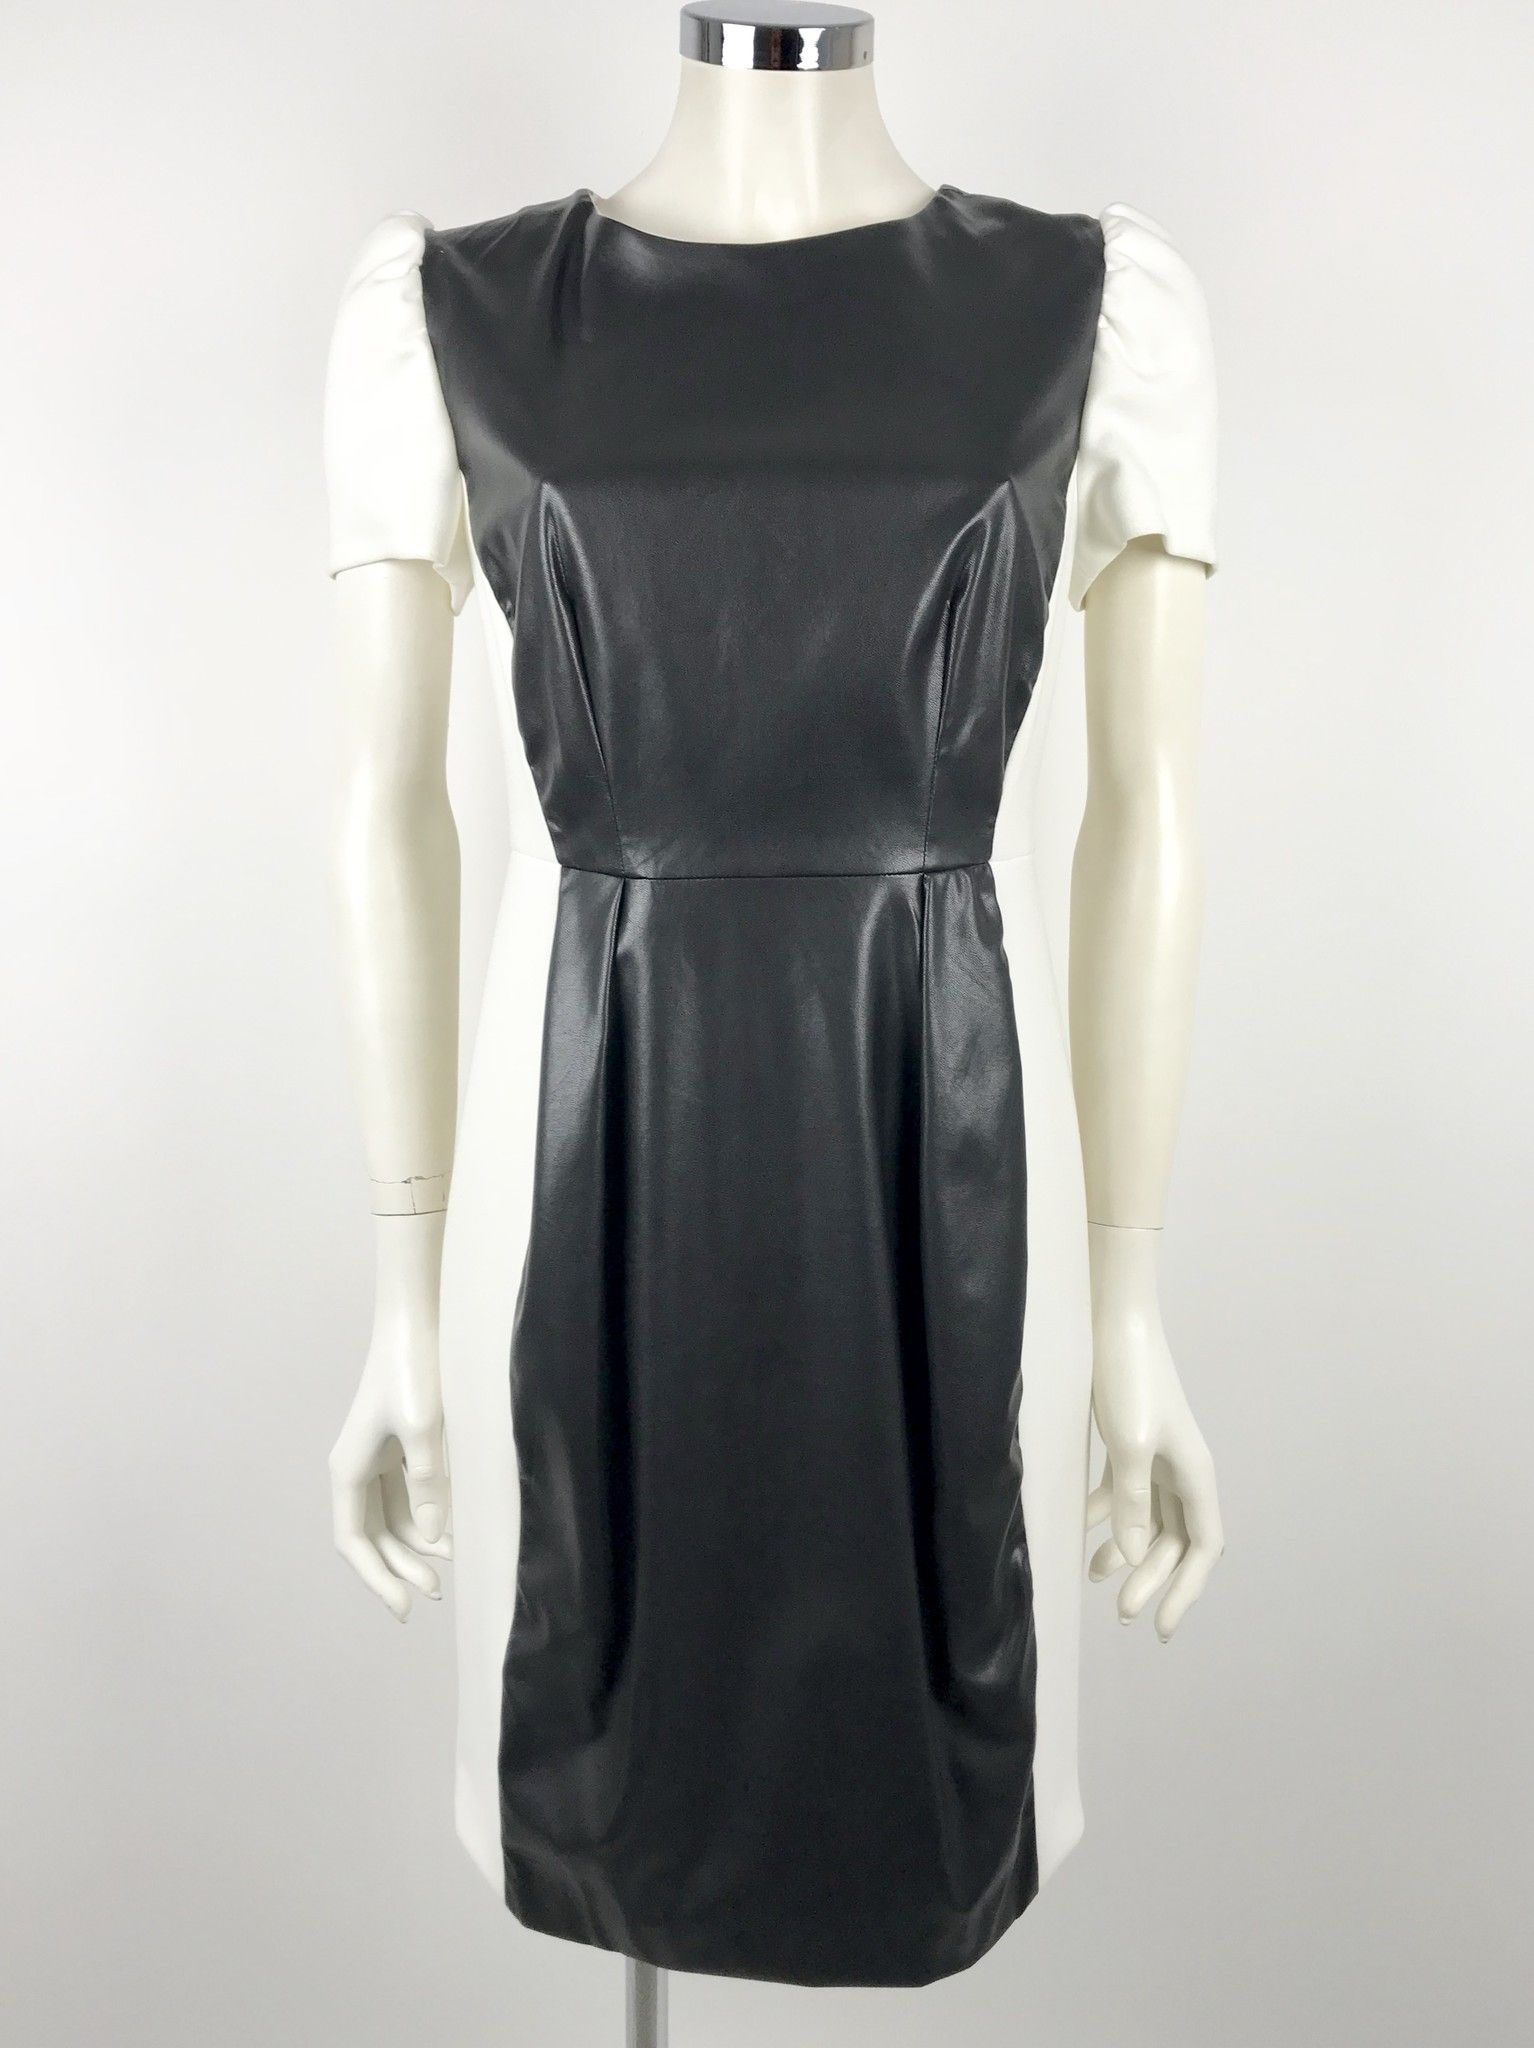 Emmjeilove Half-Sleeve Dress Faux Leather Insert Cod.73301